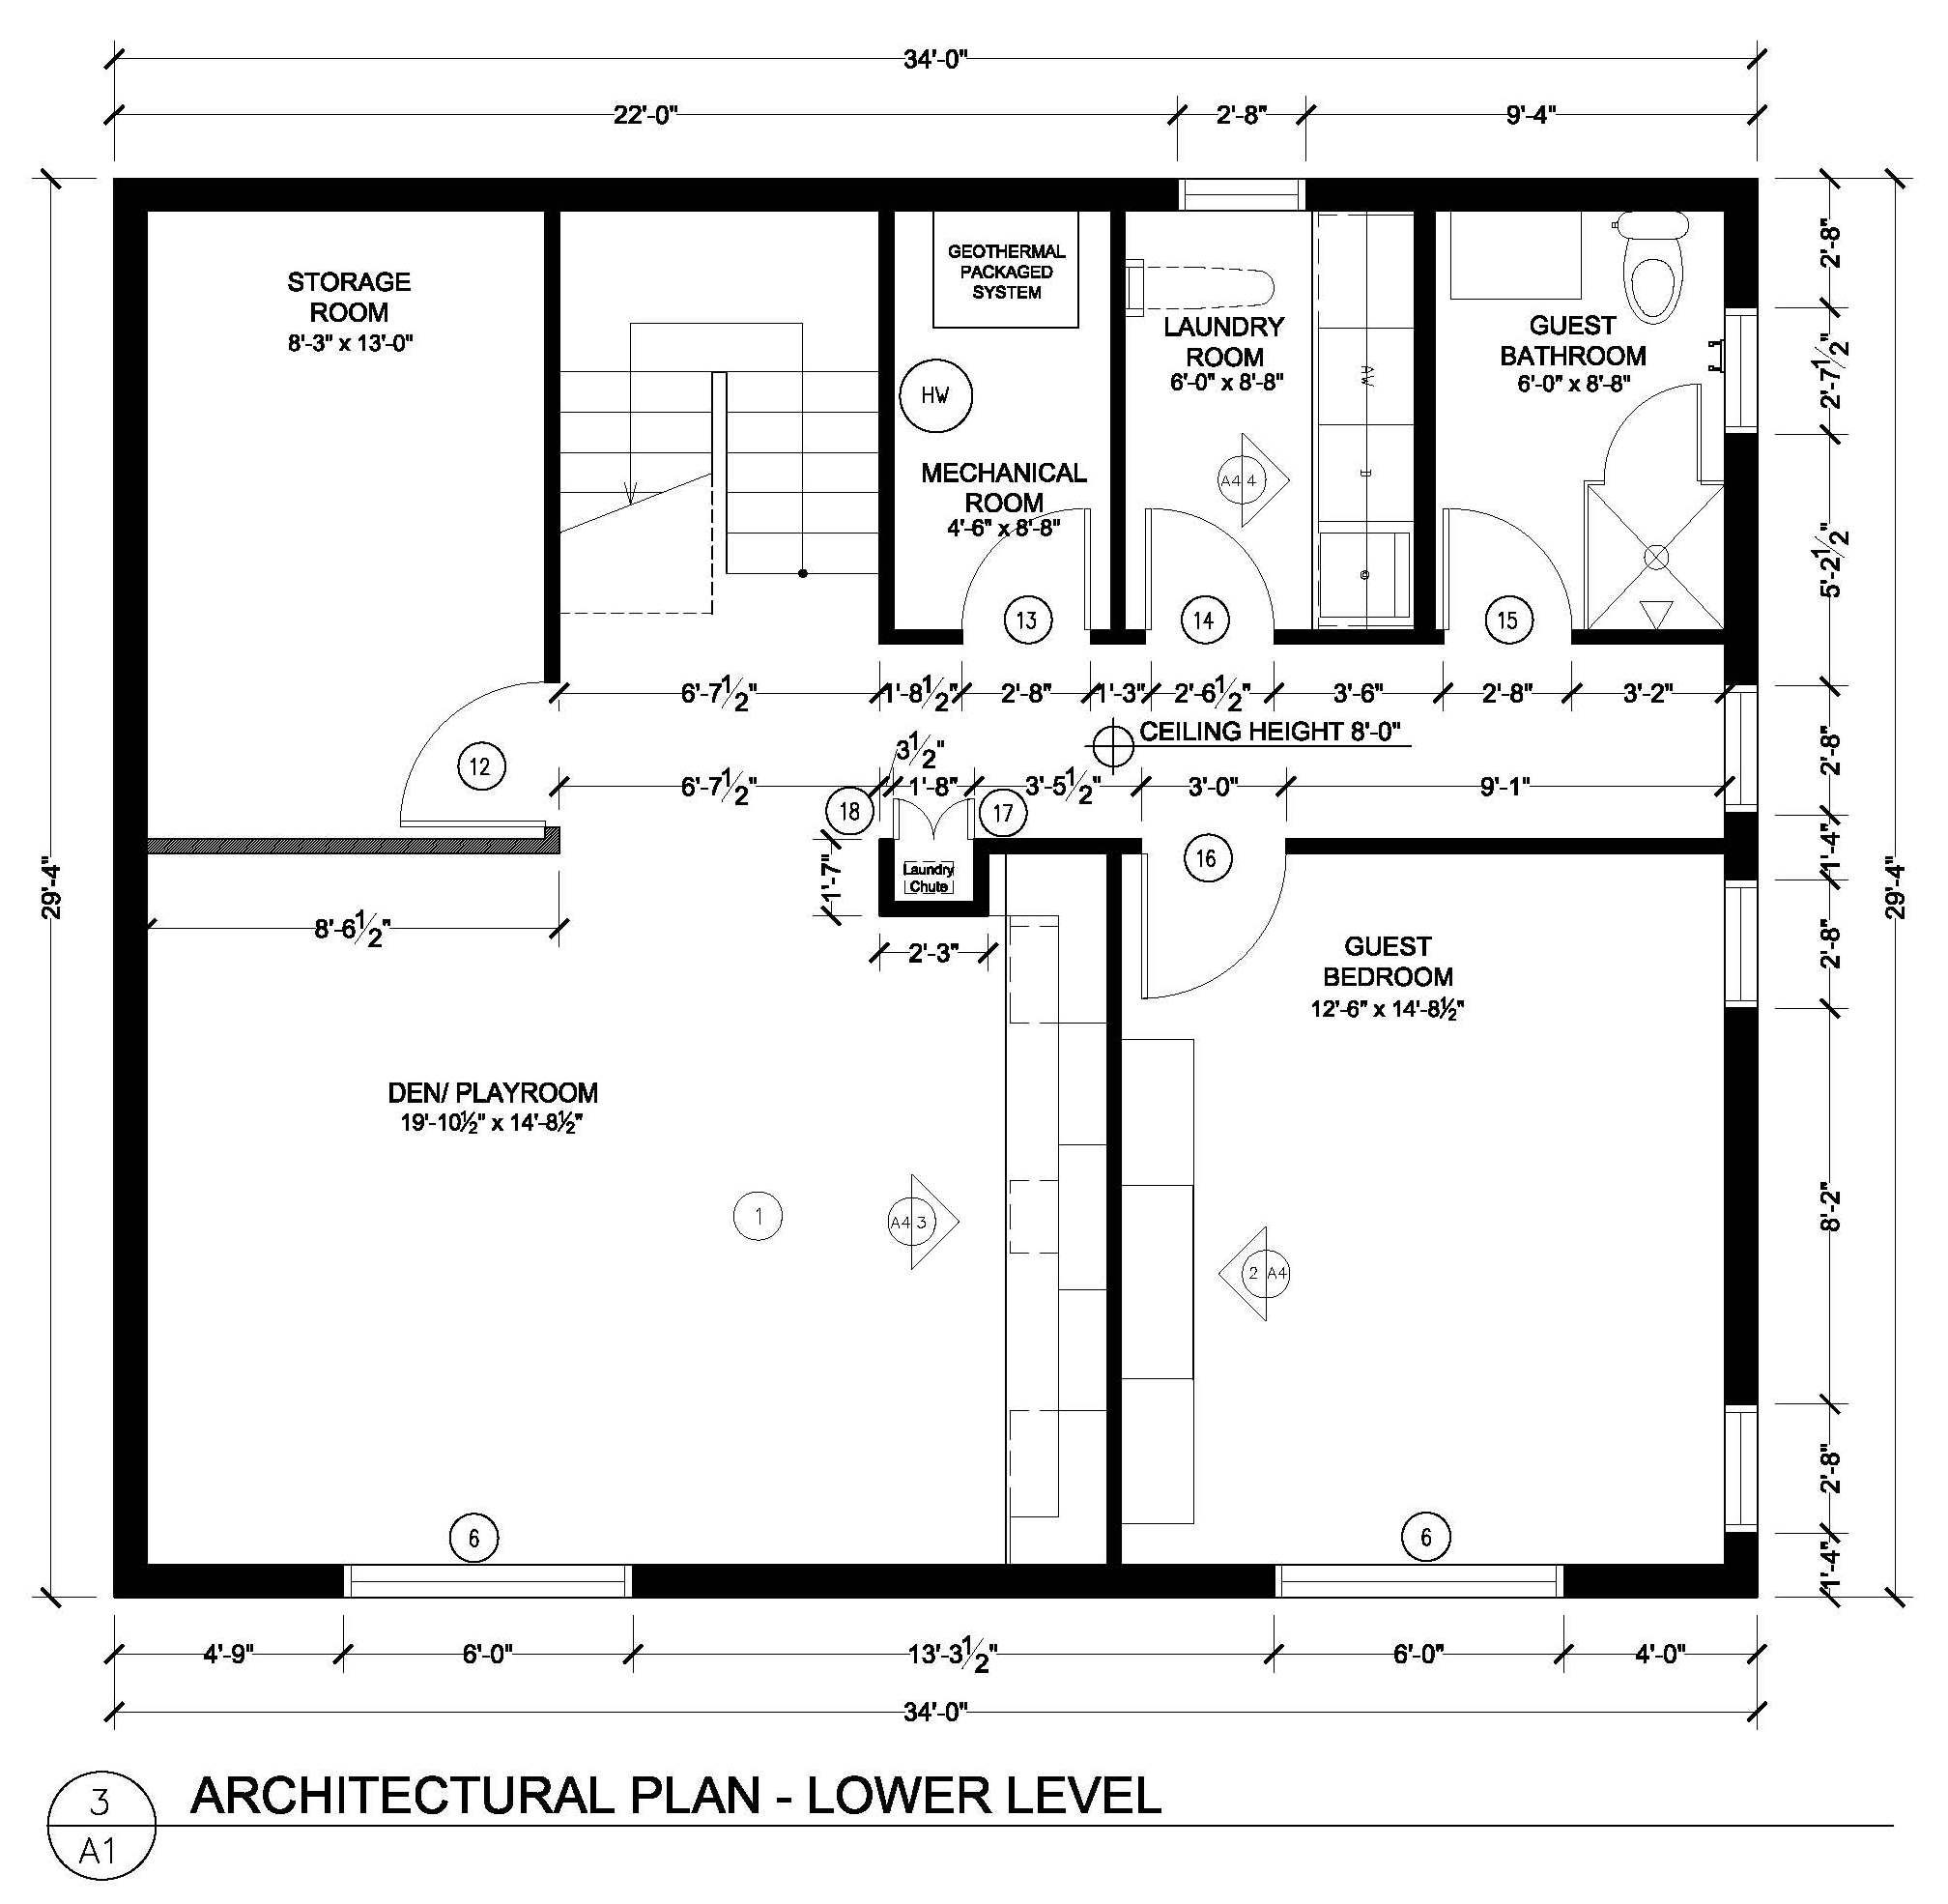 room layouts designs ideas small apartment layout tool plans photo gallery house plan buy walk shower dimensions joy studio design gallery apartment floor - House Layout Tool